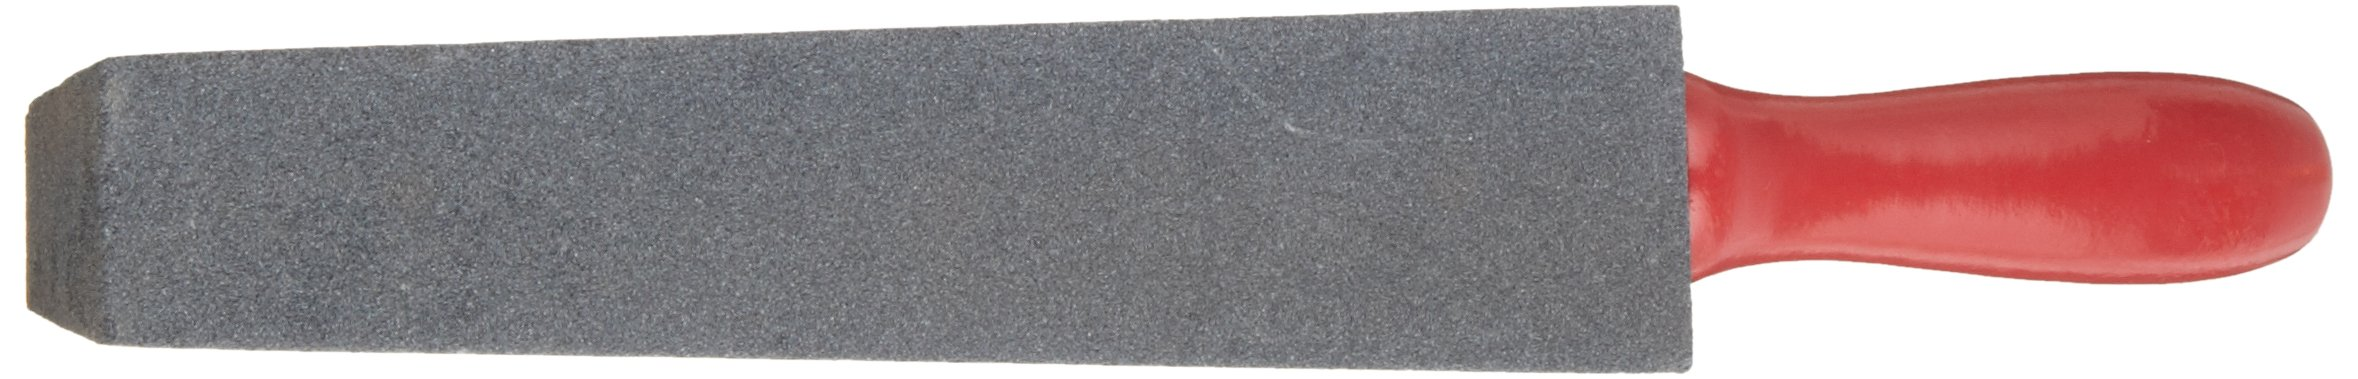 Norton Utility File with Handle, Silicon Carbide, 14'' Overall Length, Grit Coarse